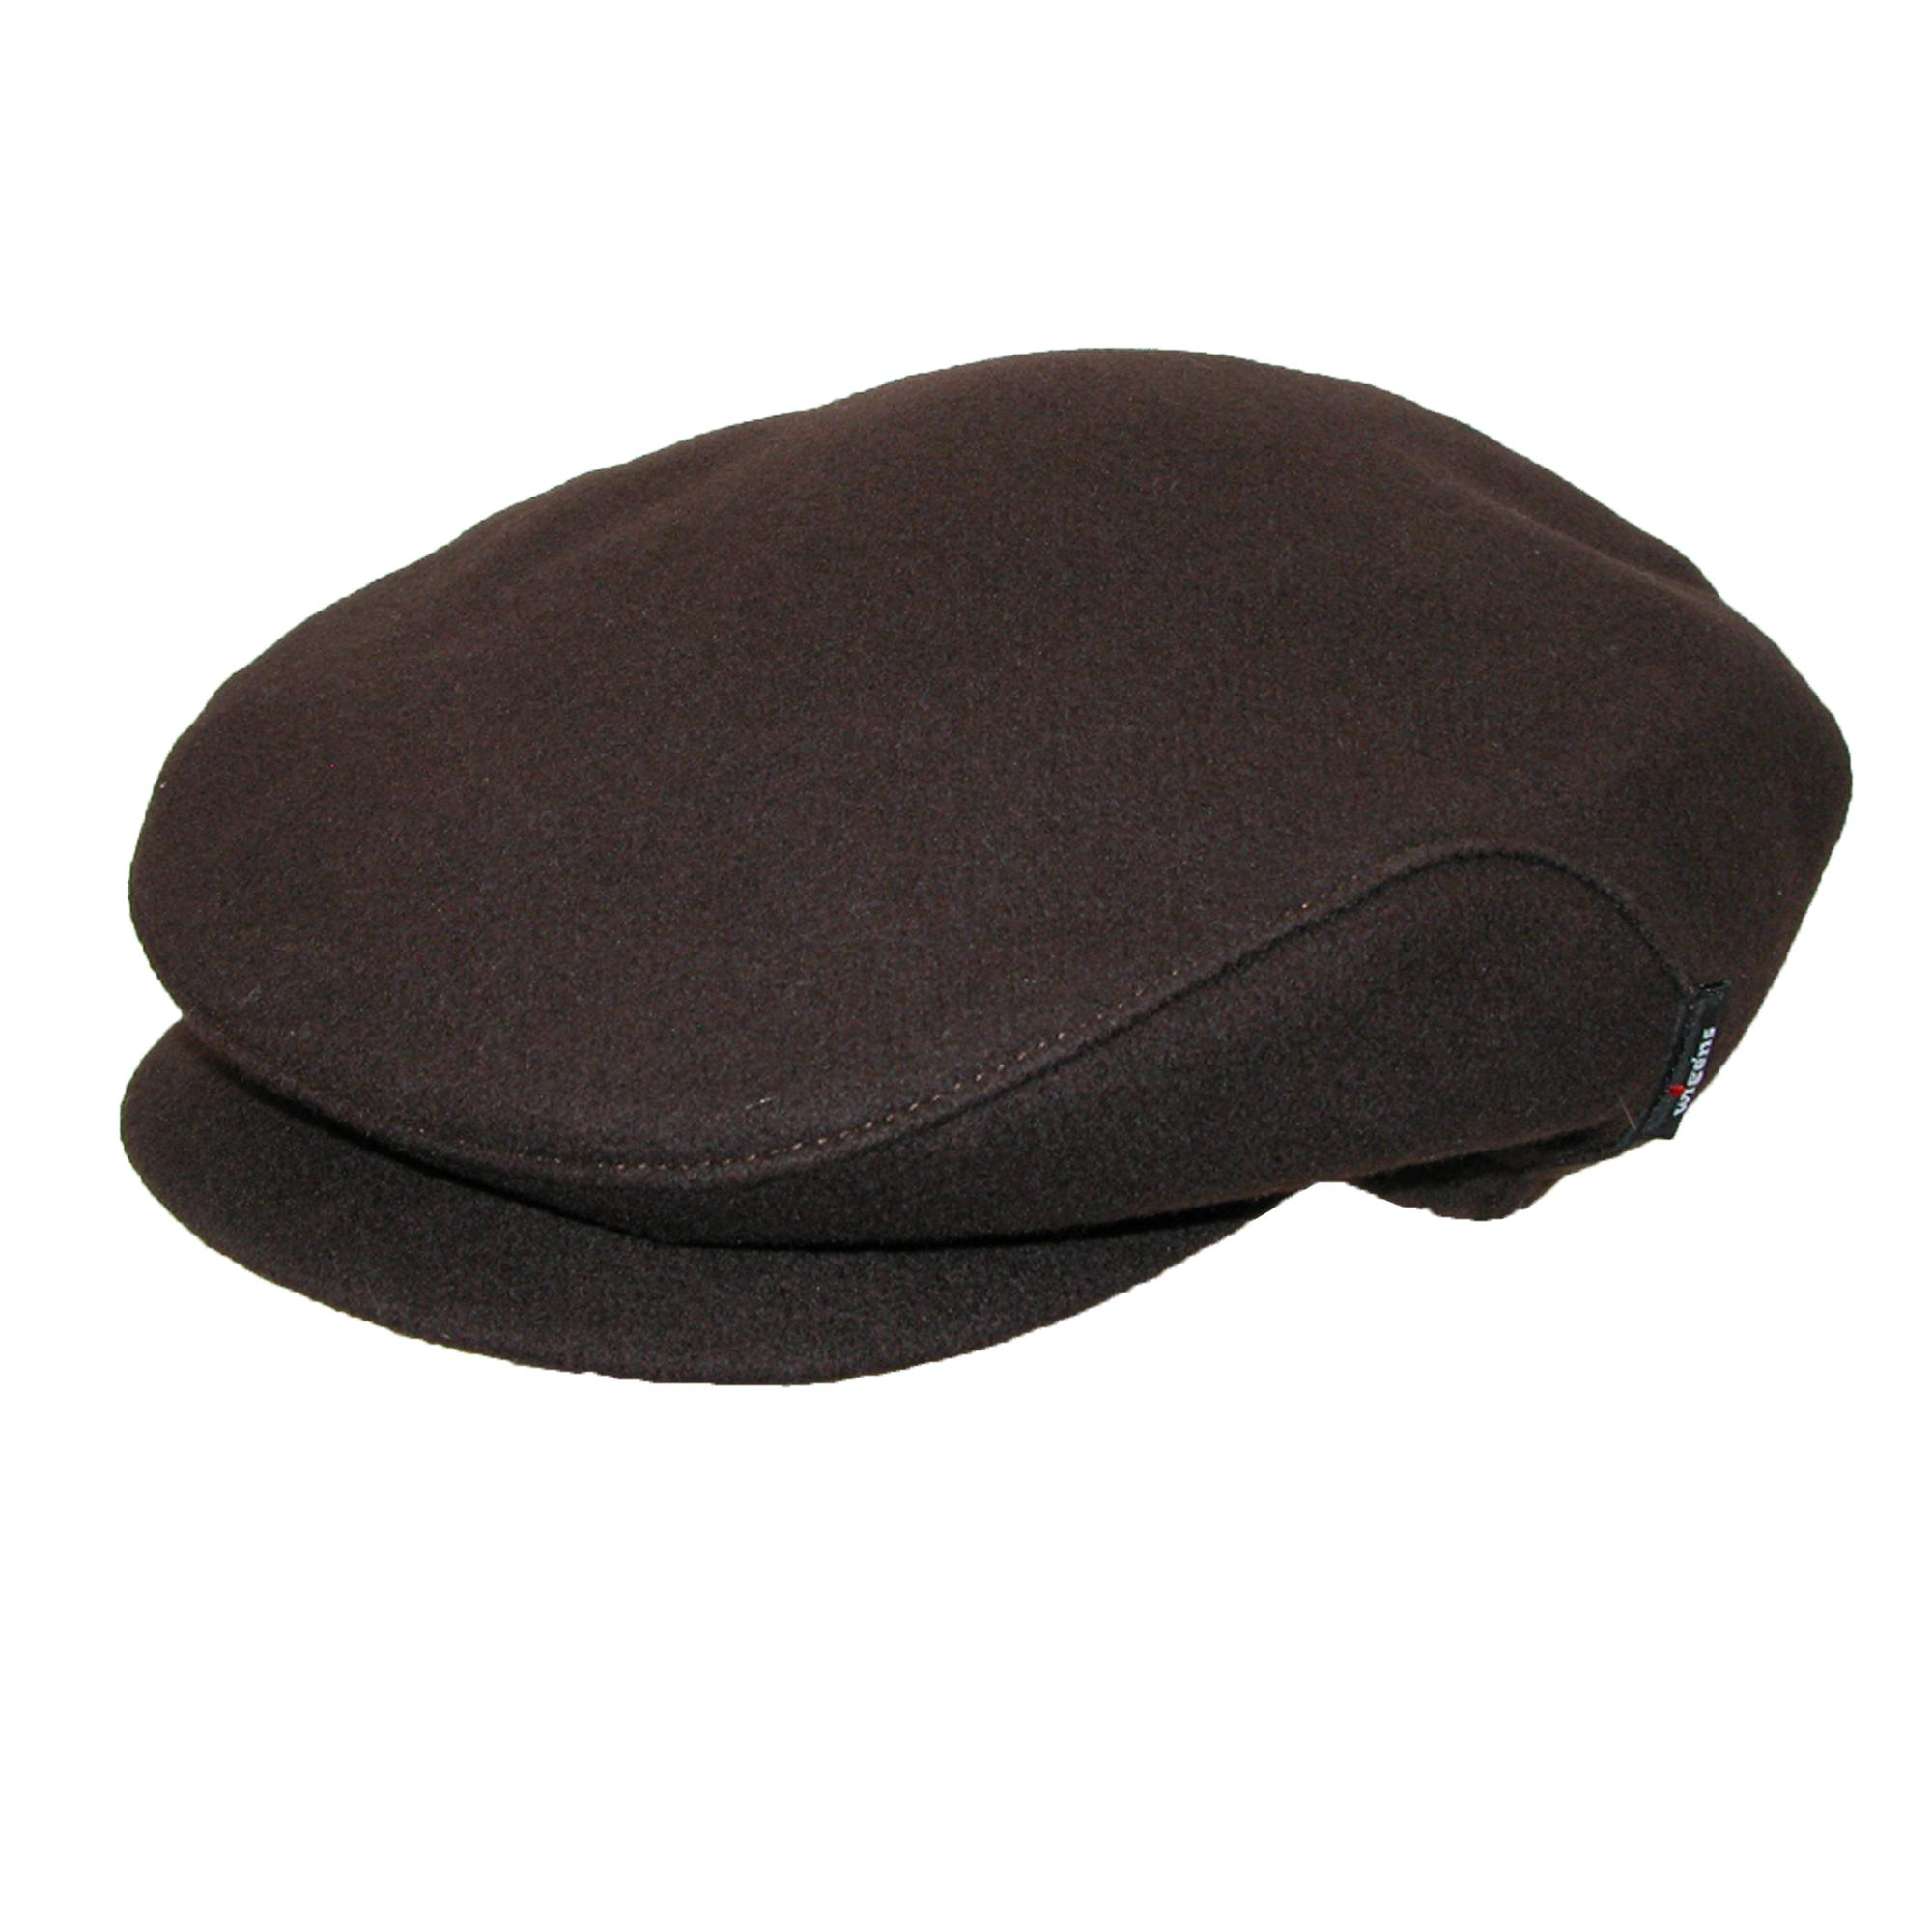 Wigens Men's Christor (Carl) Wool Ivy Cap with Earflaps